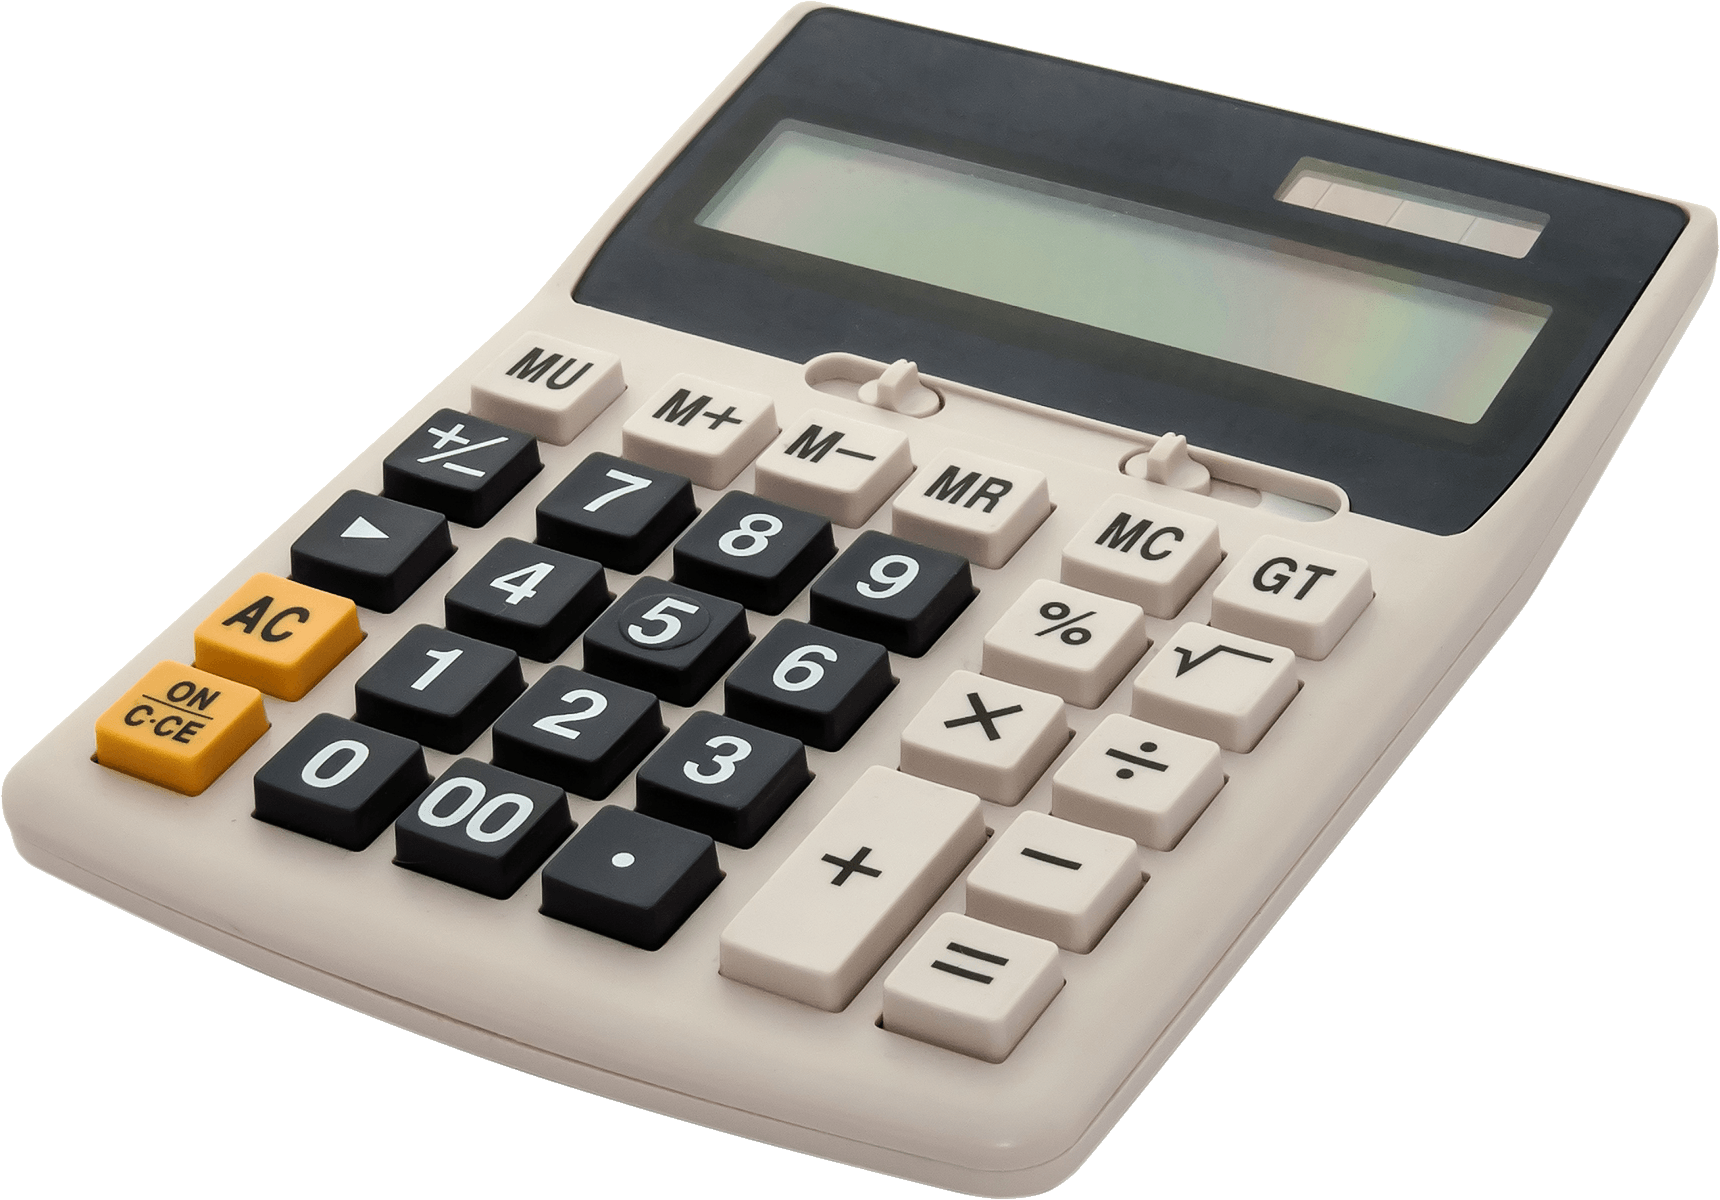 Calculator png. Vintage transparent stickpng download